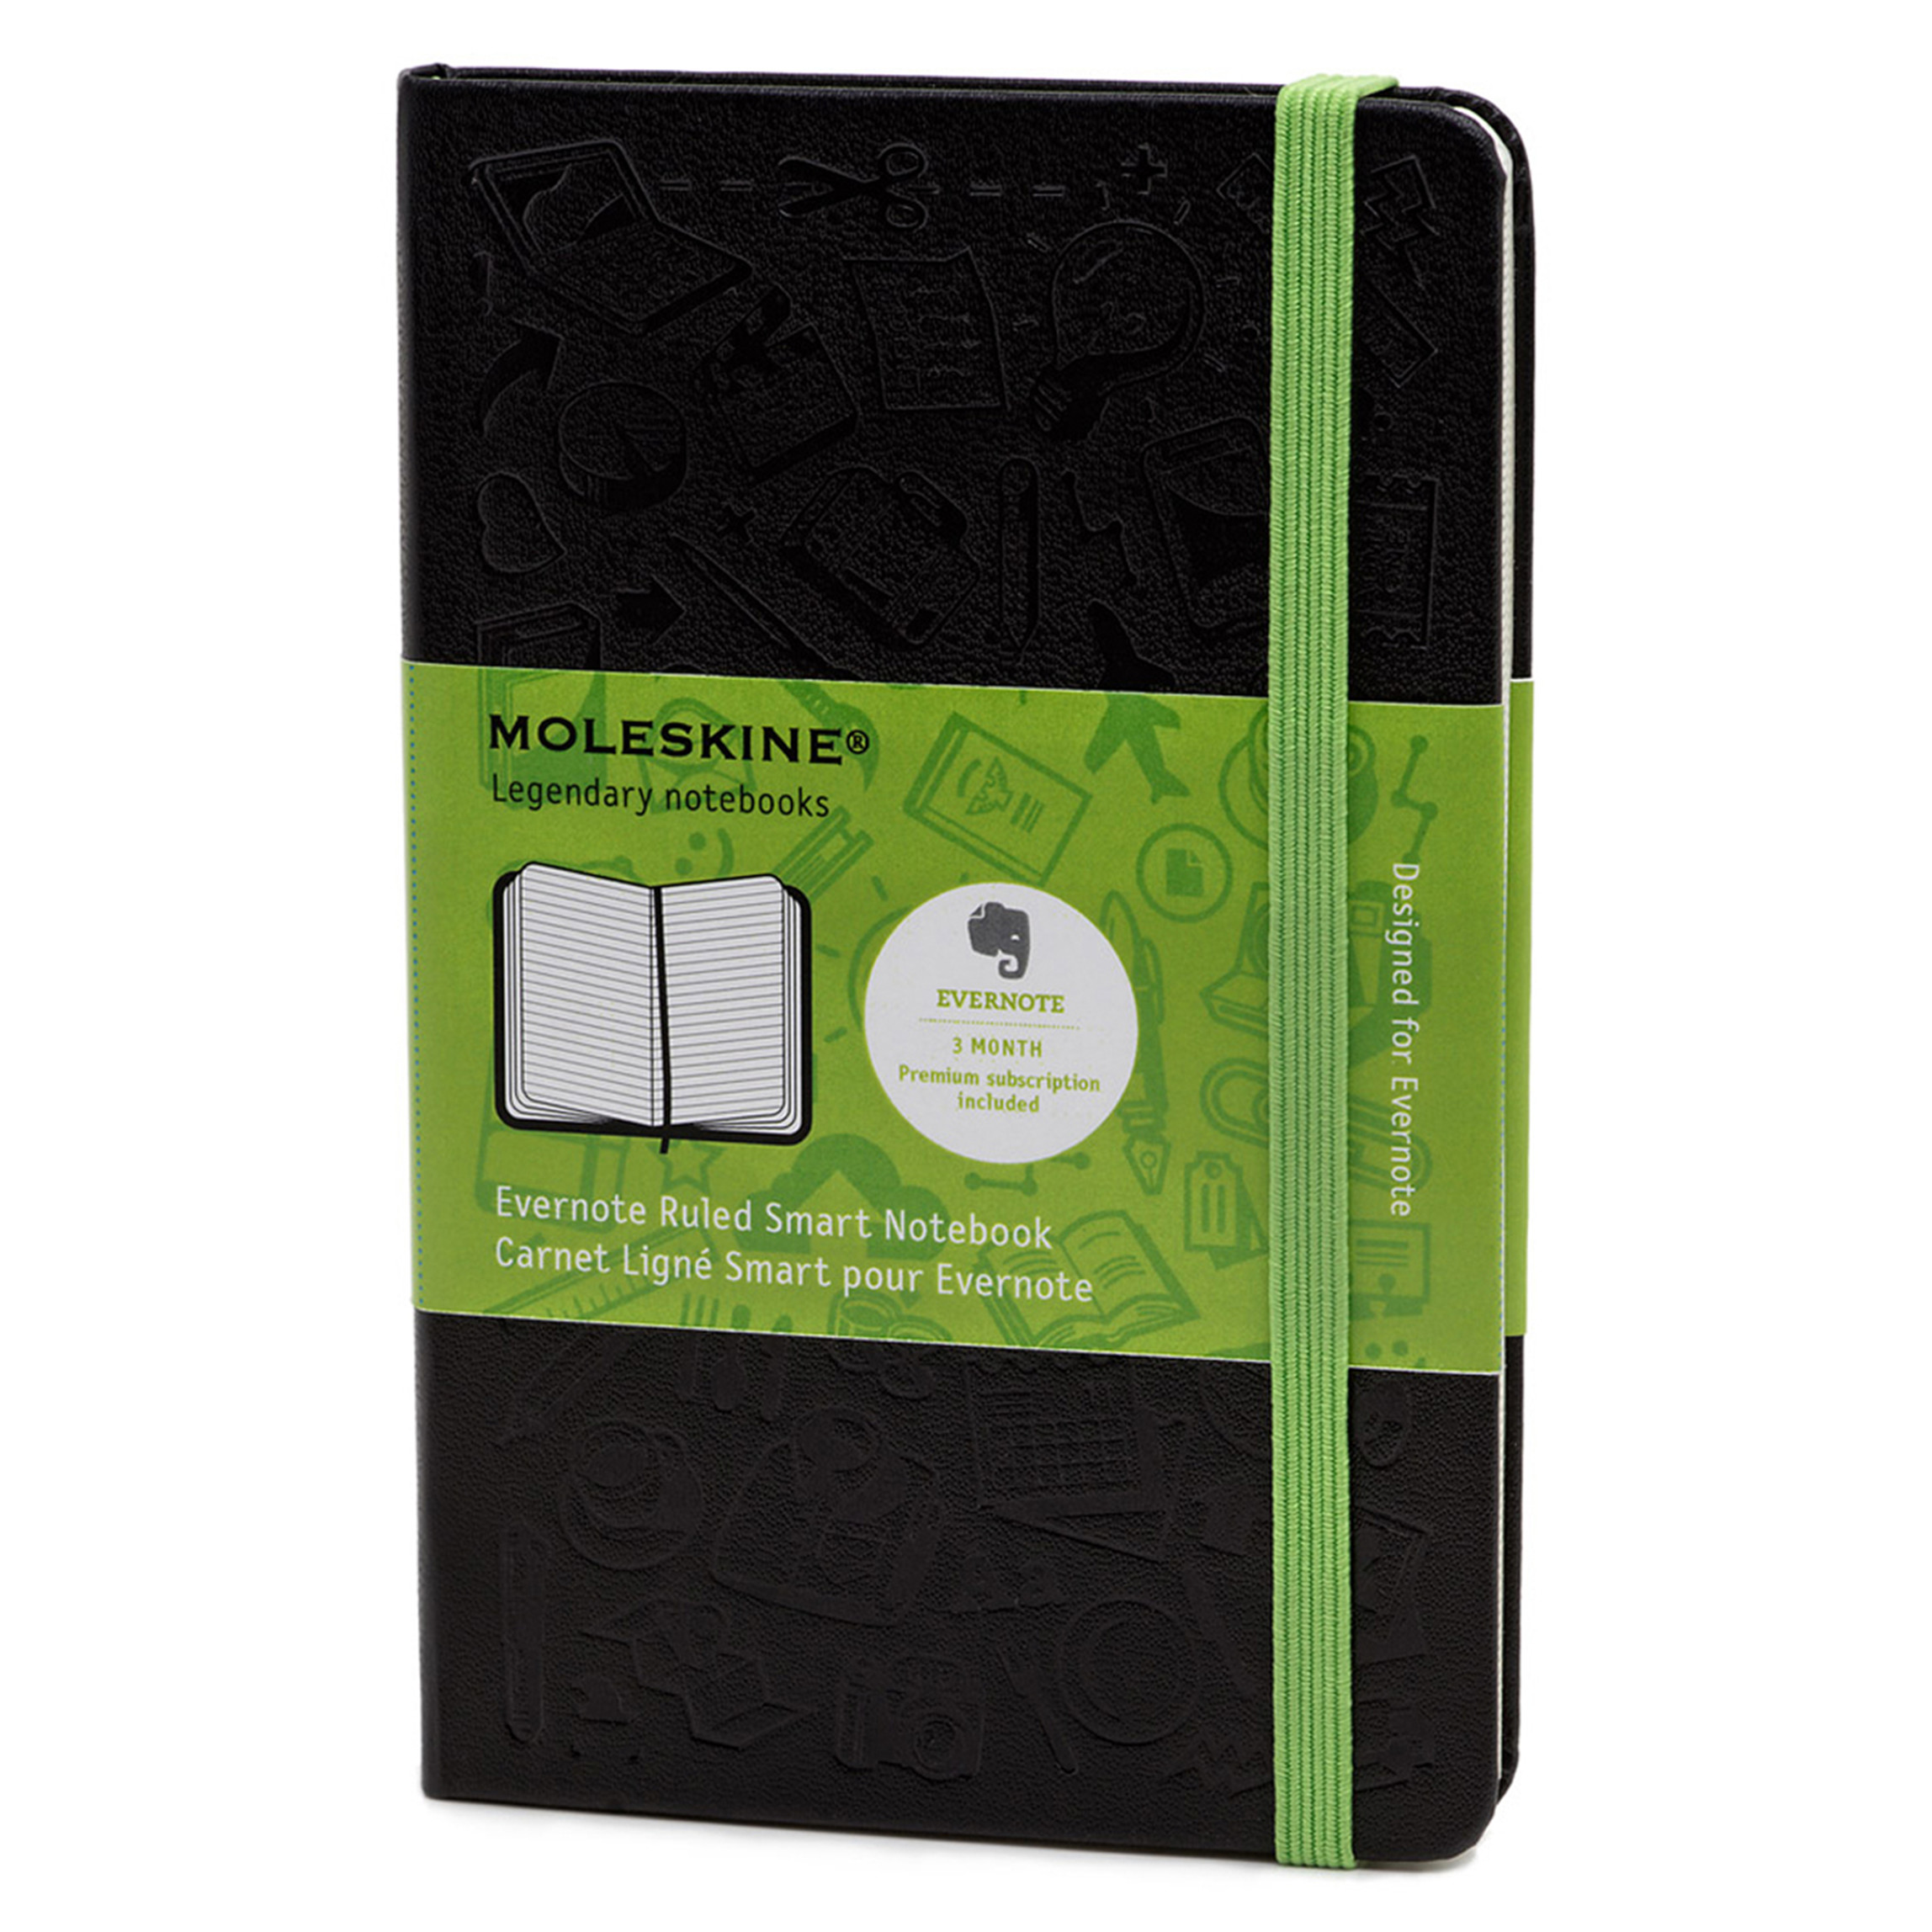 Moleskine Ruled Evernote Smart Notebook, 5 1/2 x 3 1/2, Black Cover, 192 Sheets